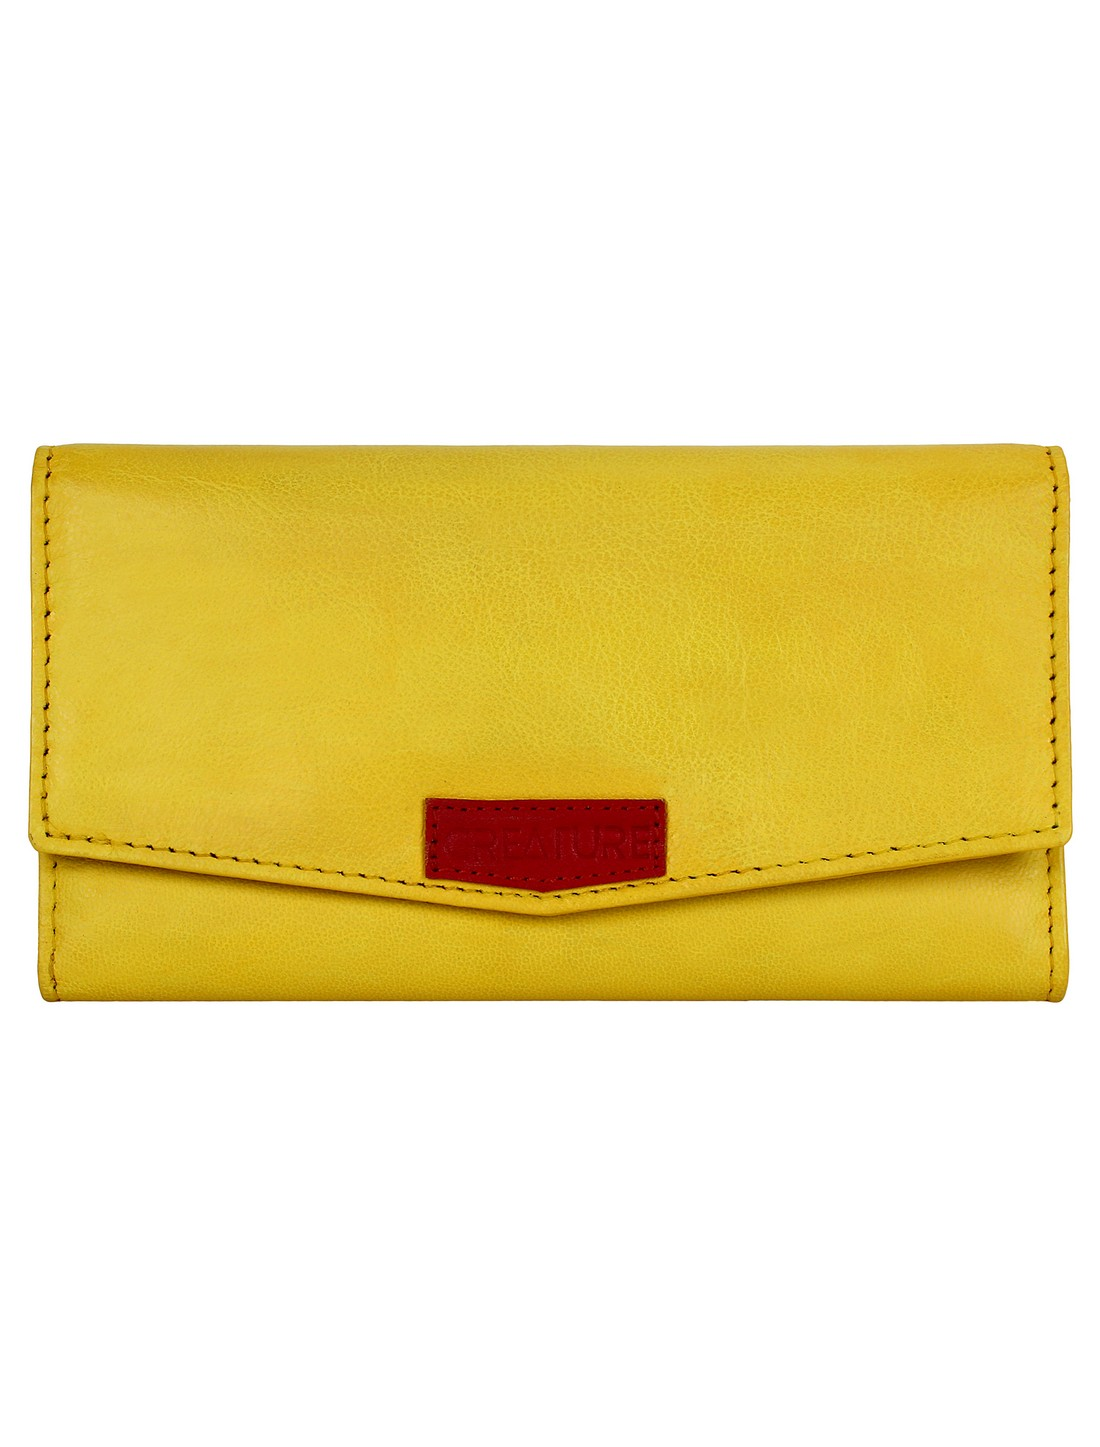 CREATURE | CREATURE Yellow Stylish Genuine Leather Clutch for Women